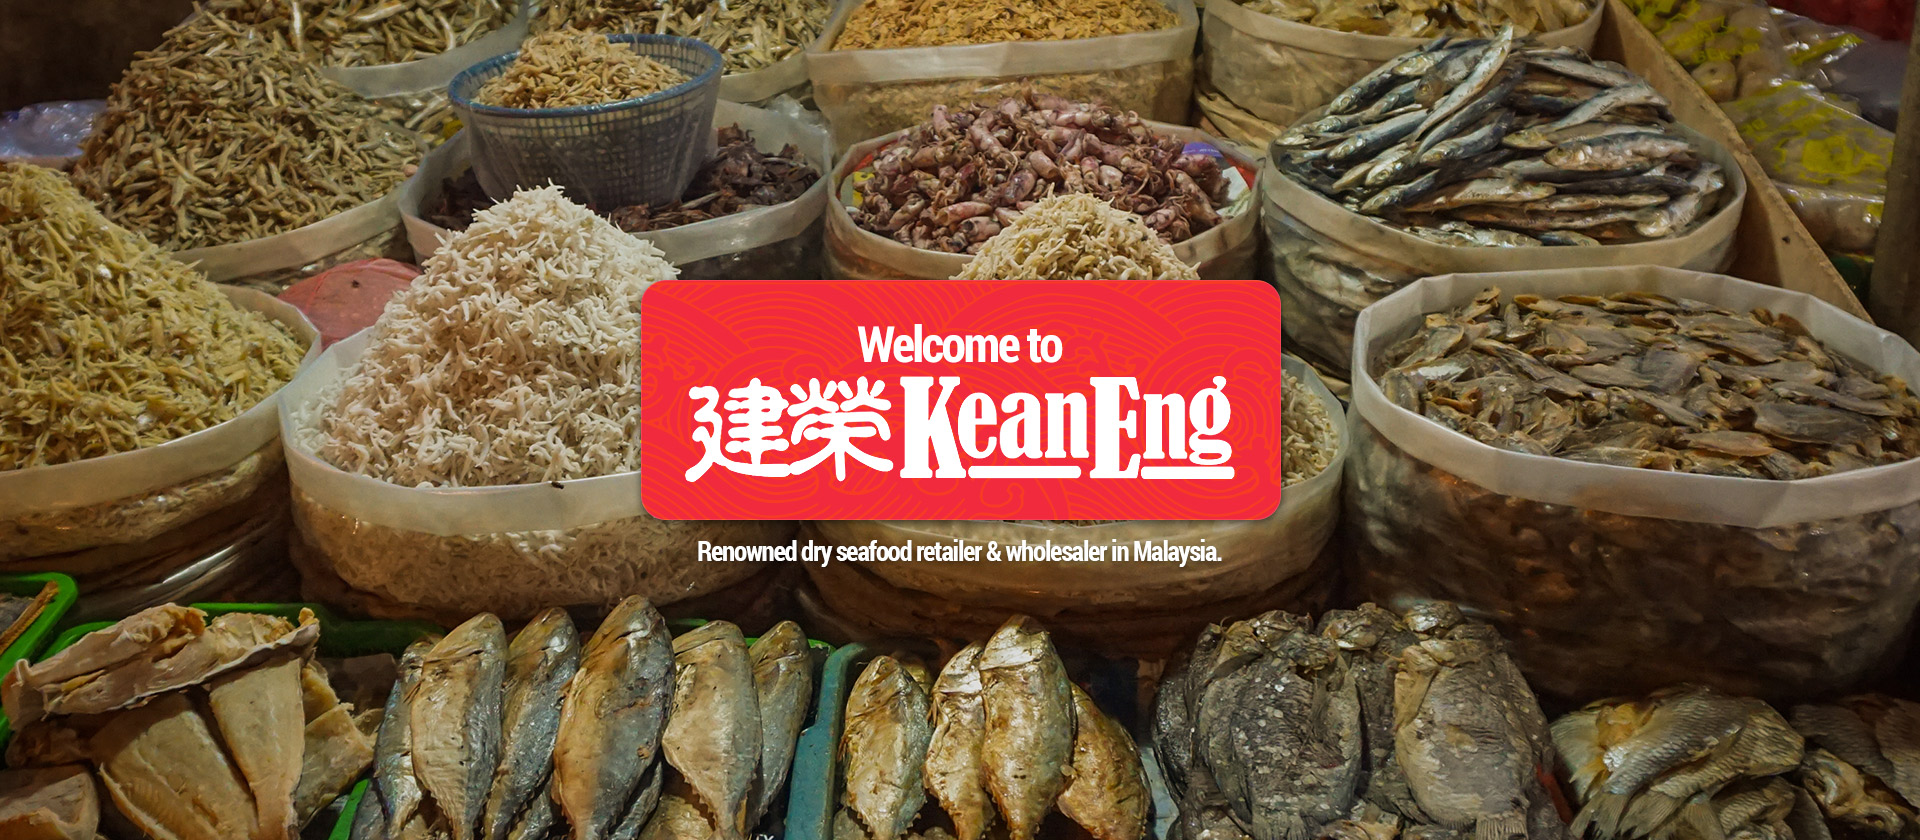 建榮 KeanEng - Renowned Dry Seafood Retail & Wholesaler in Malaysia